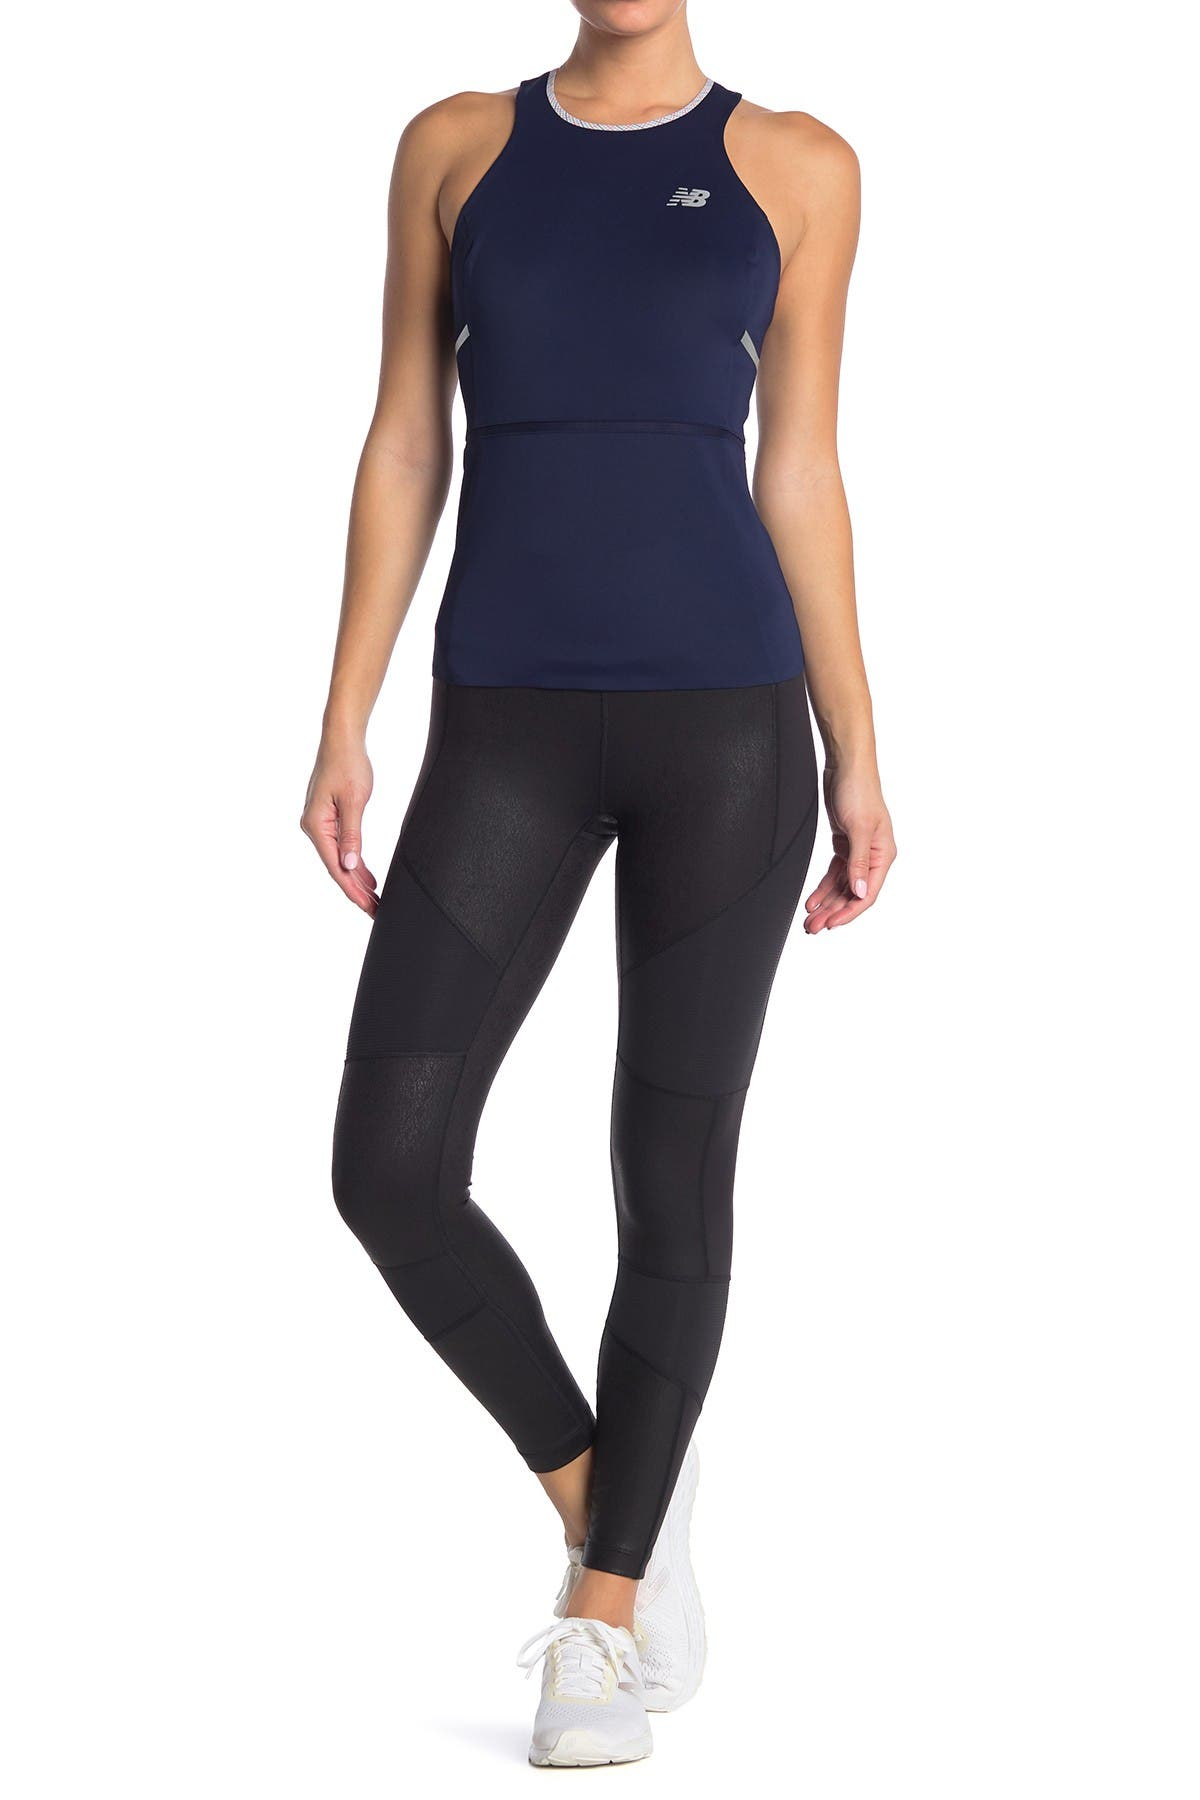 Image of New Balance Determination Solid Tights